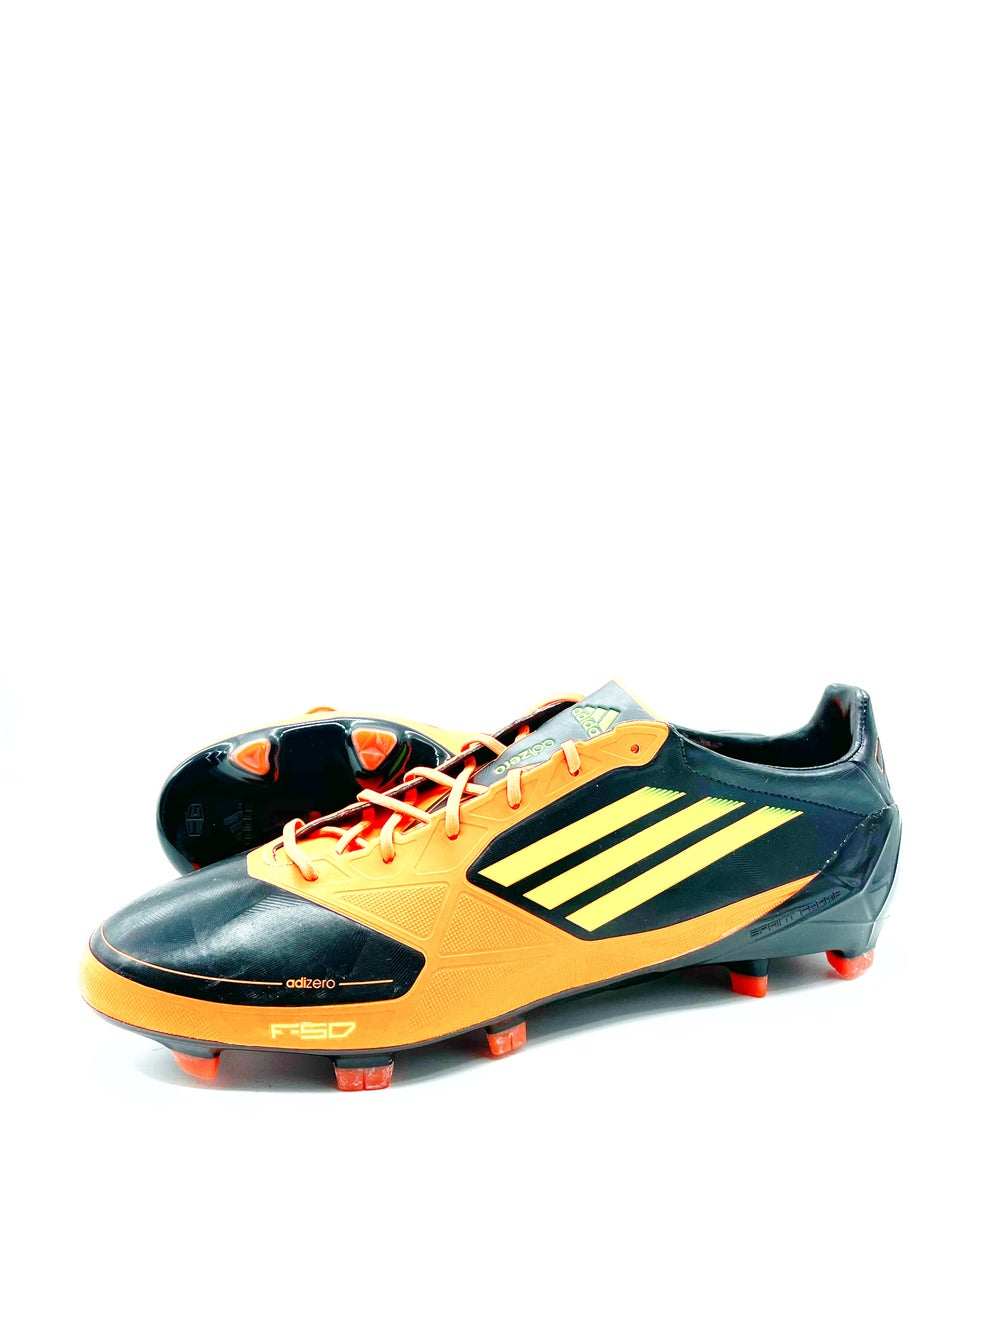 Image of Adidas F50 adizero orange black FG